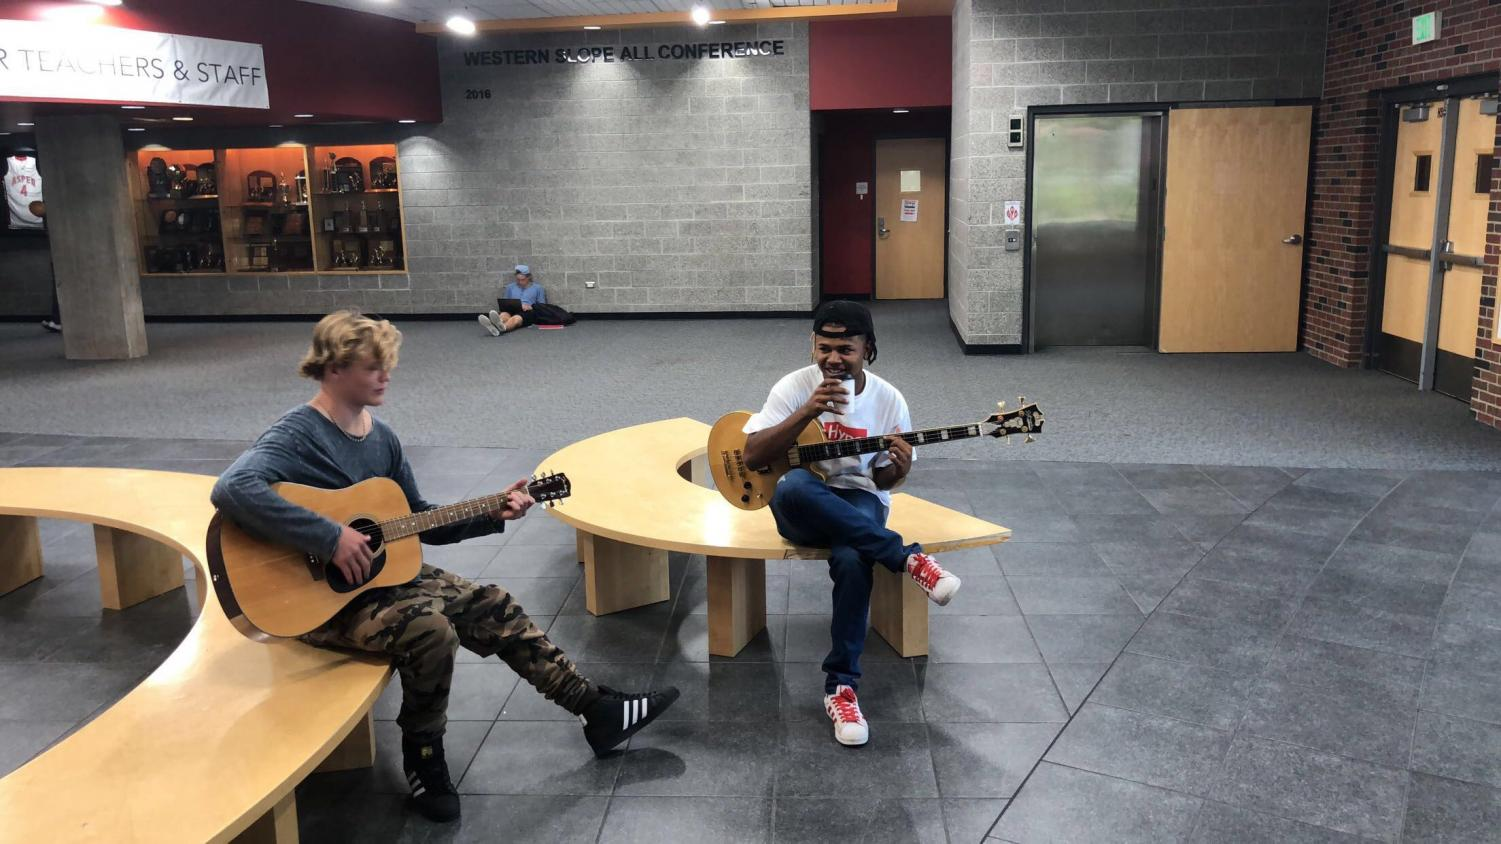 Two band students practicing the guitar.